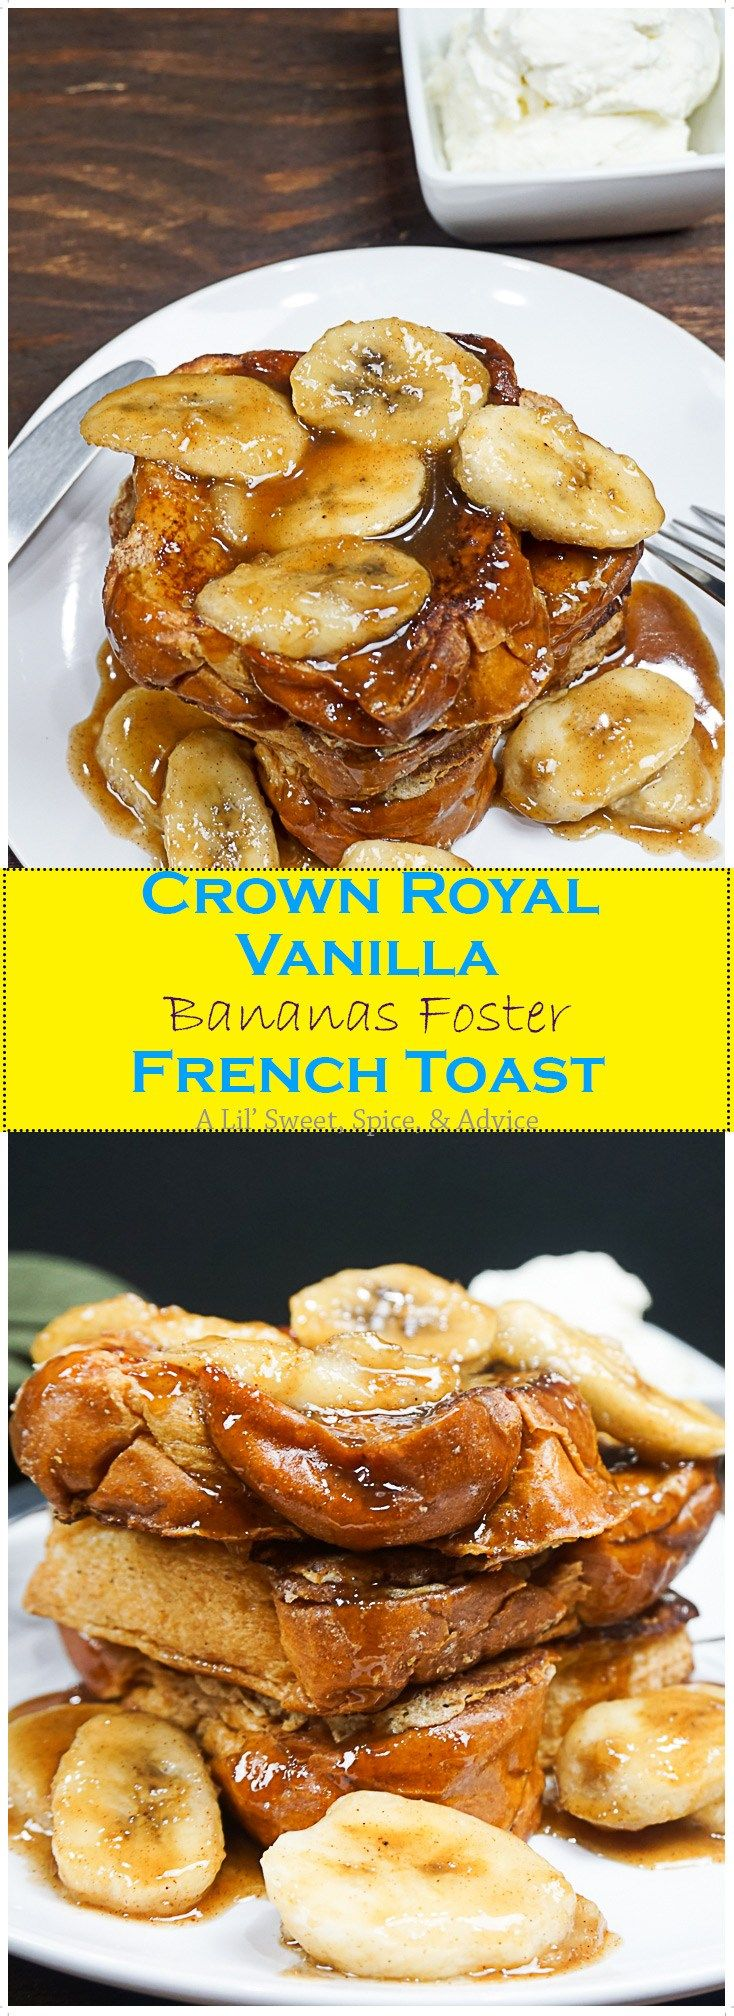 The 25 best crown royal vanilla recipes ideas on pinterest crown royal vanilla bananas foster french toast forumfinder Images